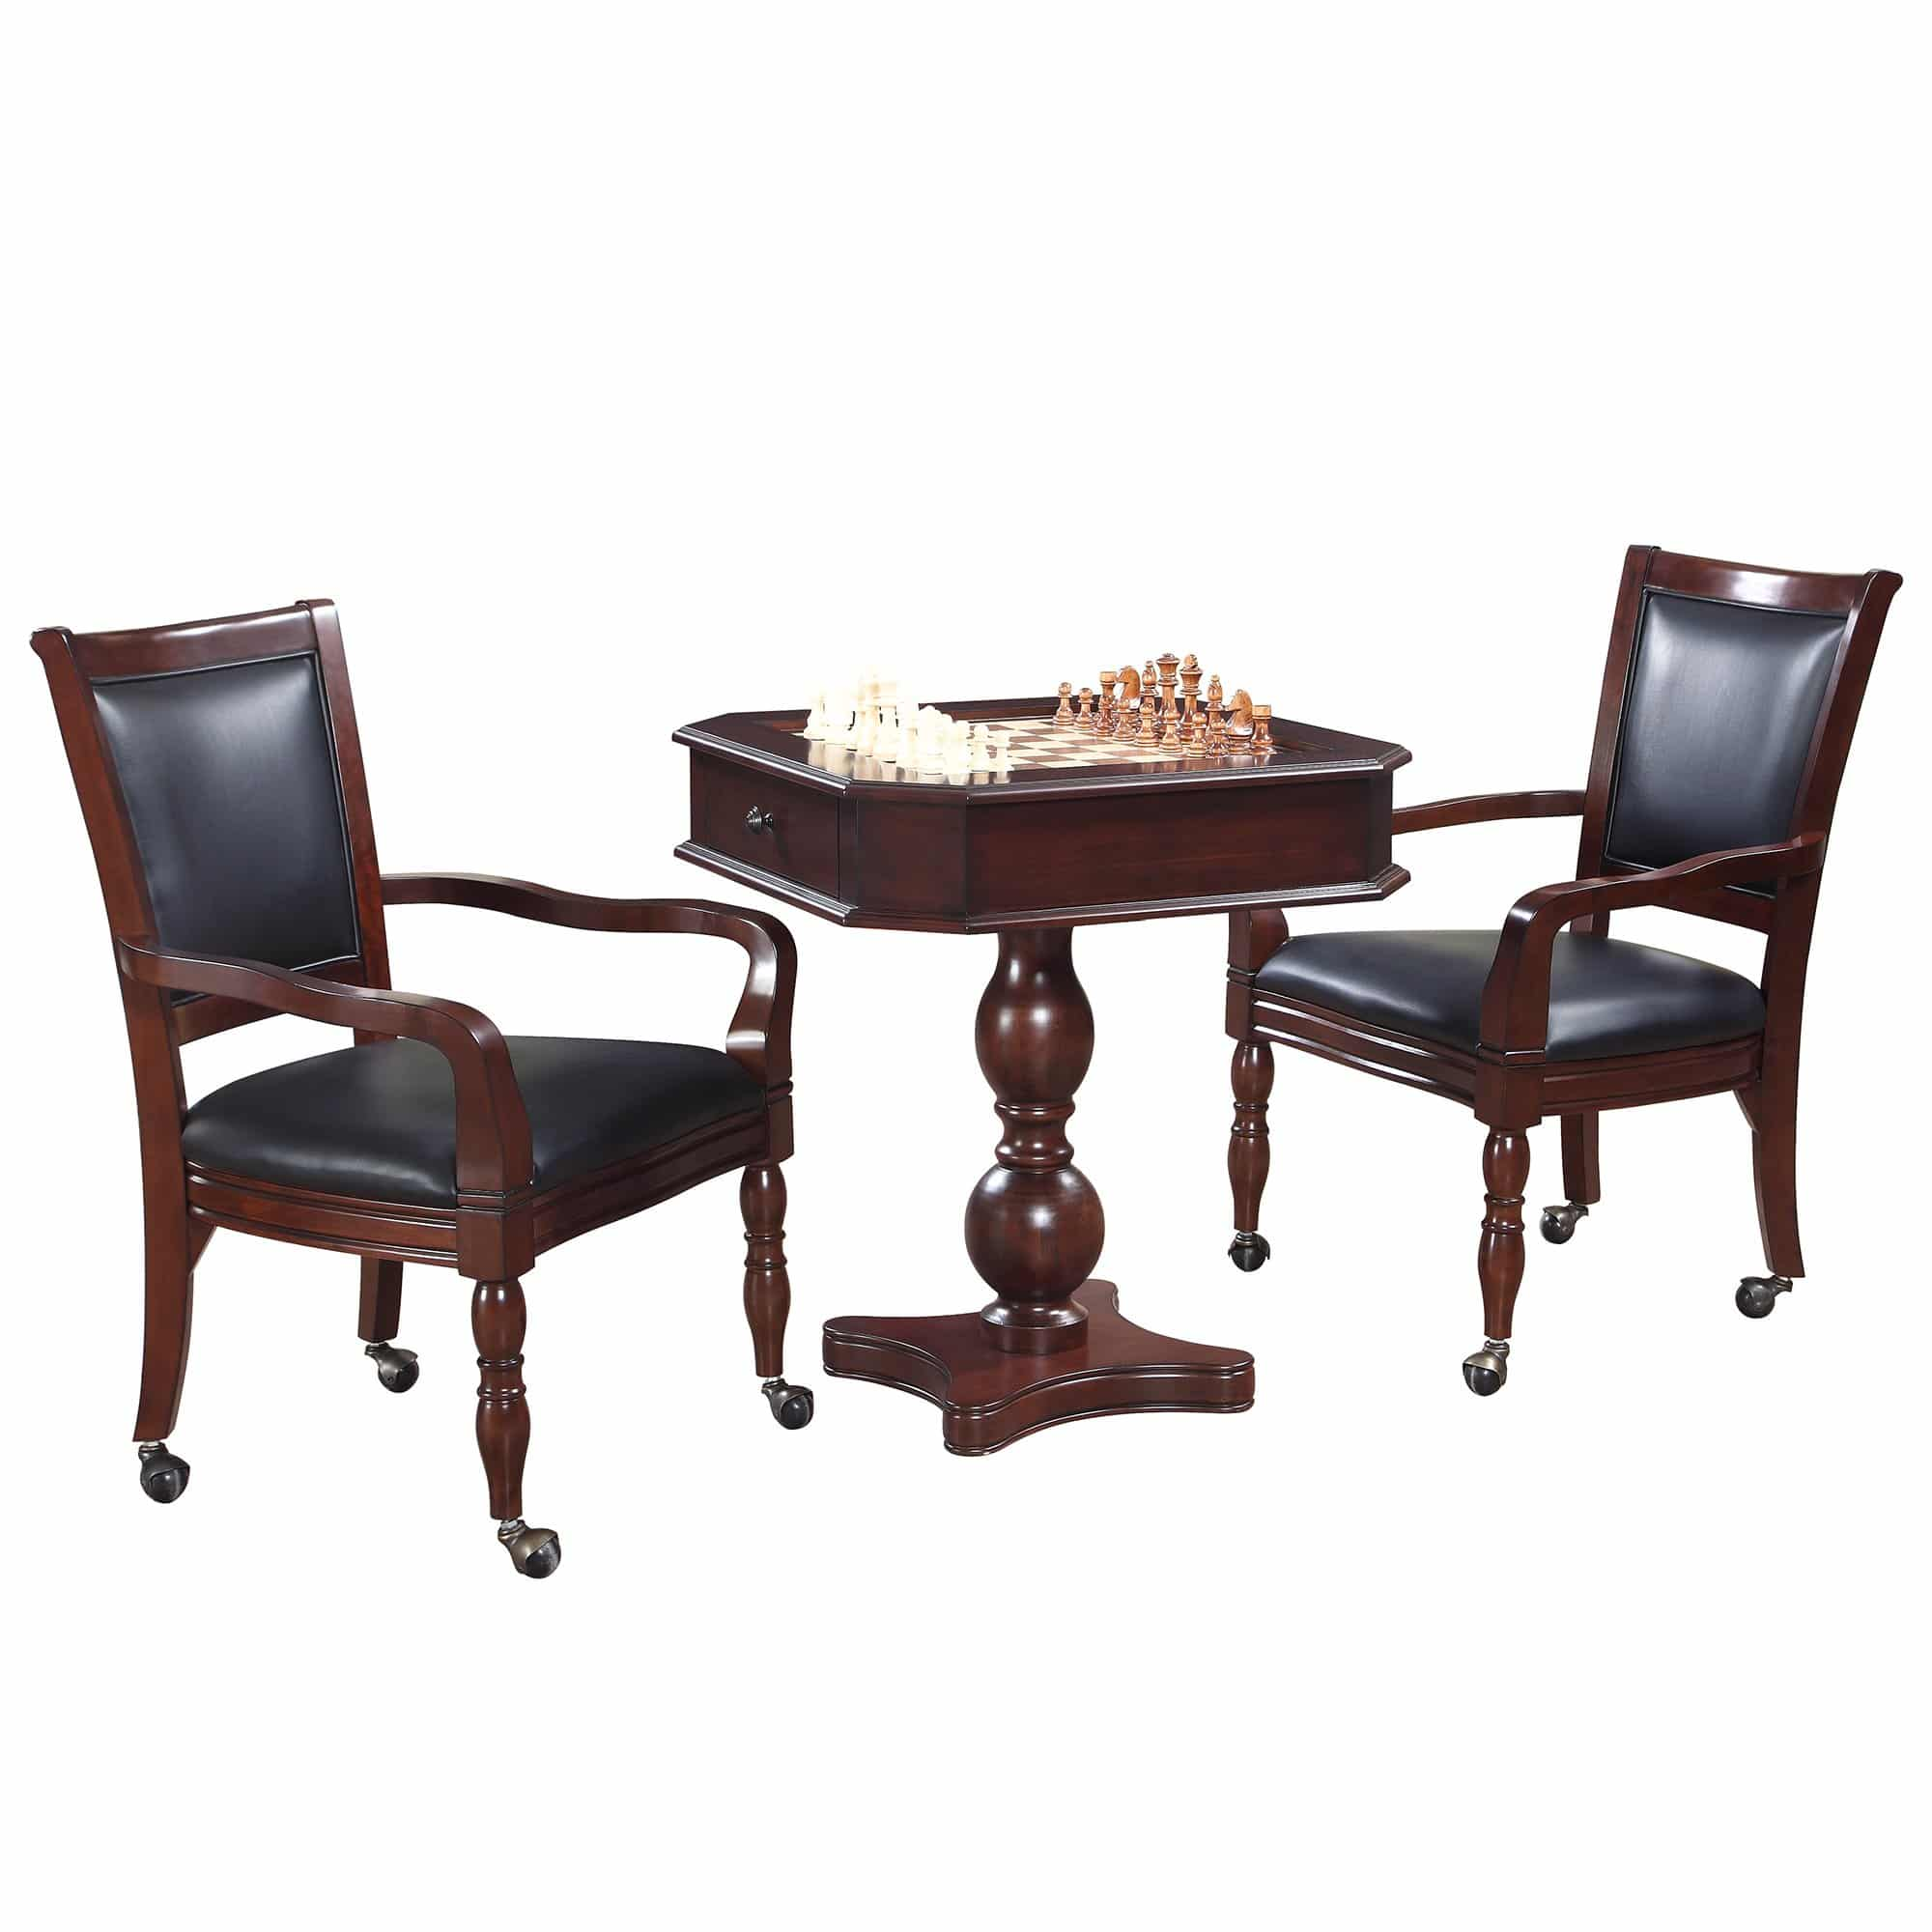 Pedestal Chairs Fortress Chess Checkers And Backgammon Pedestal Game Table